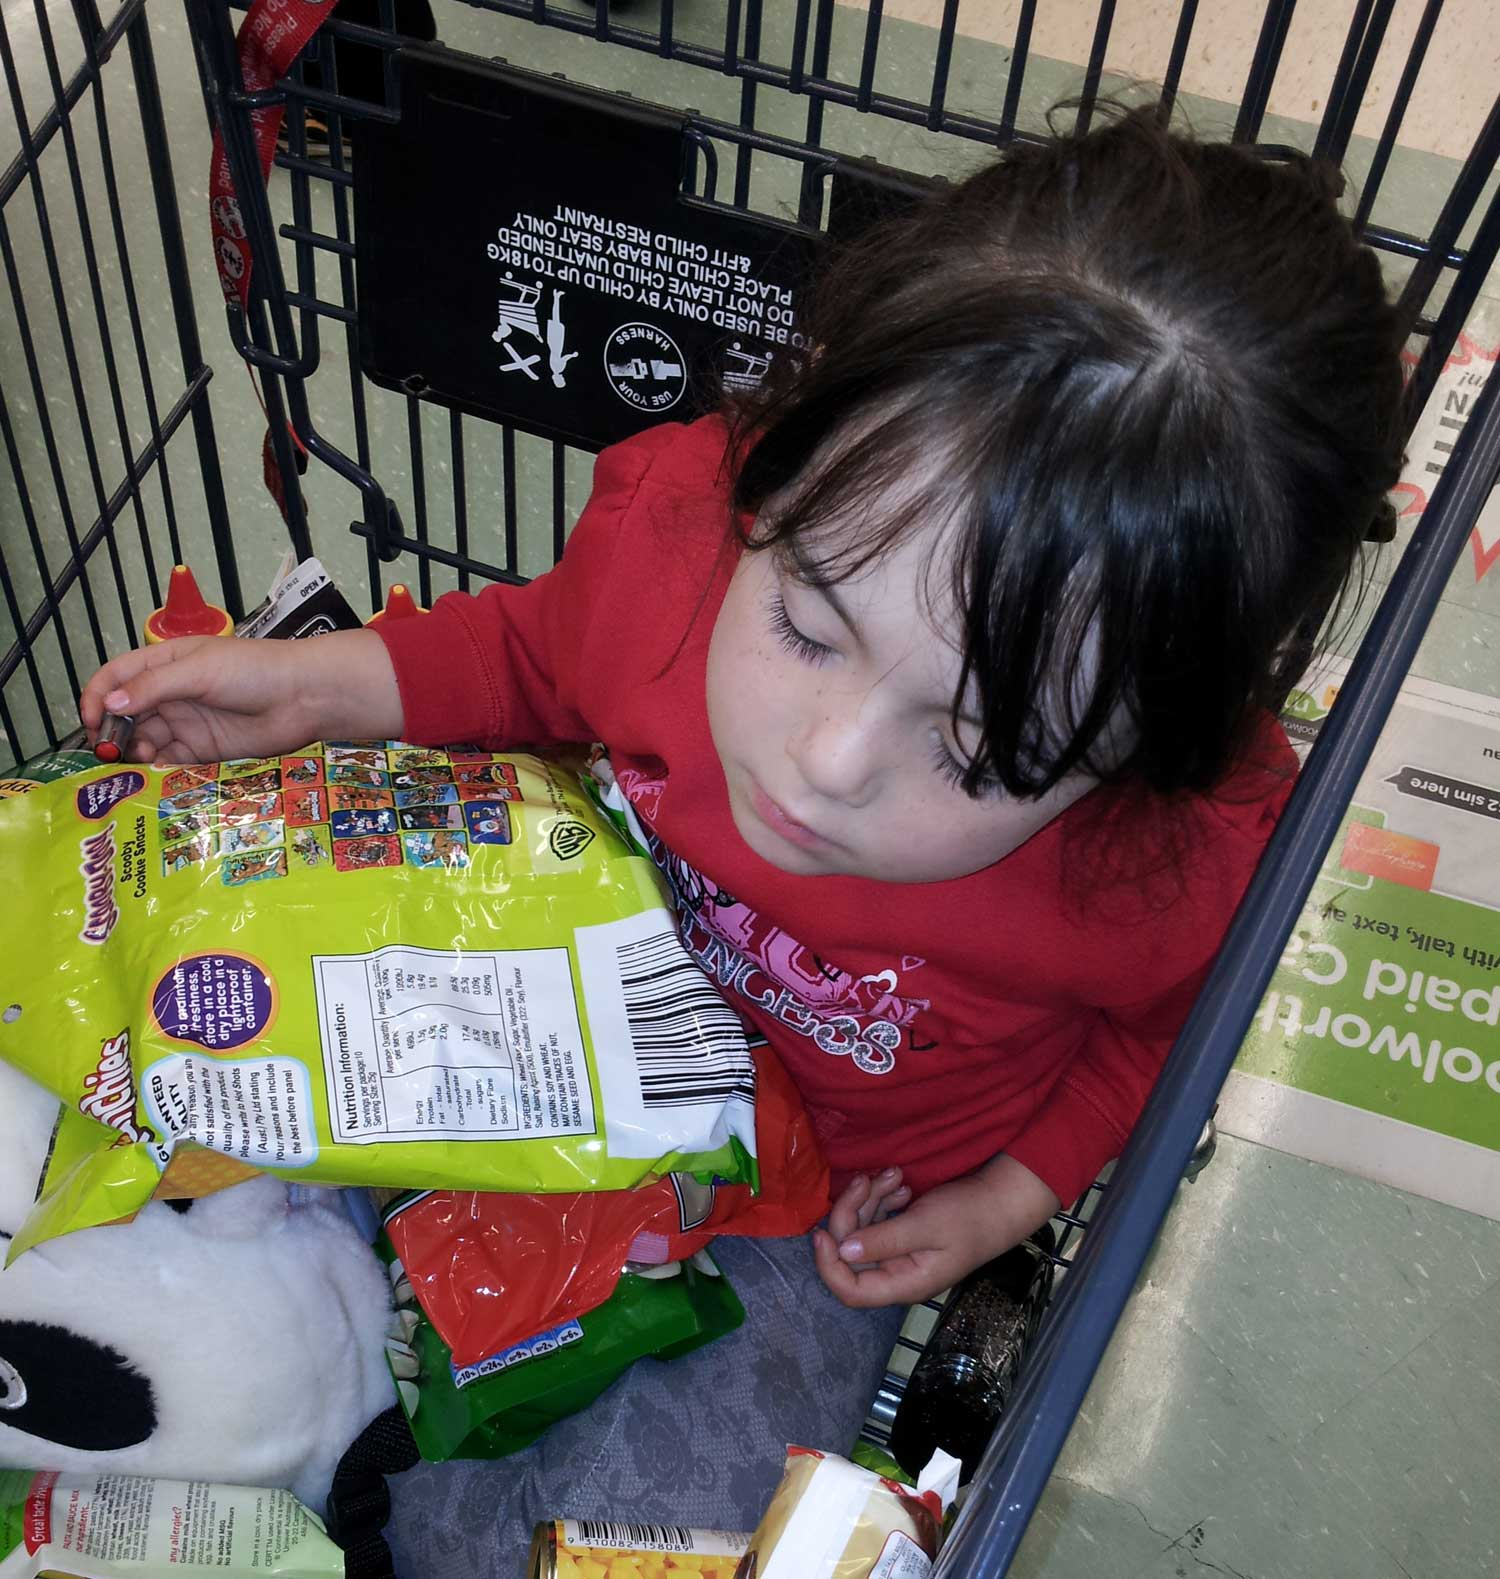 Tookii things to do with kids sleeping in shopping trolley one of the activities for kids